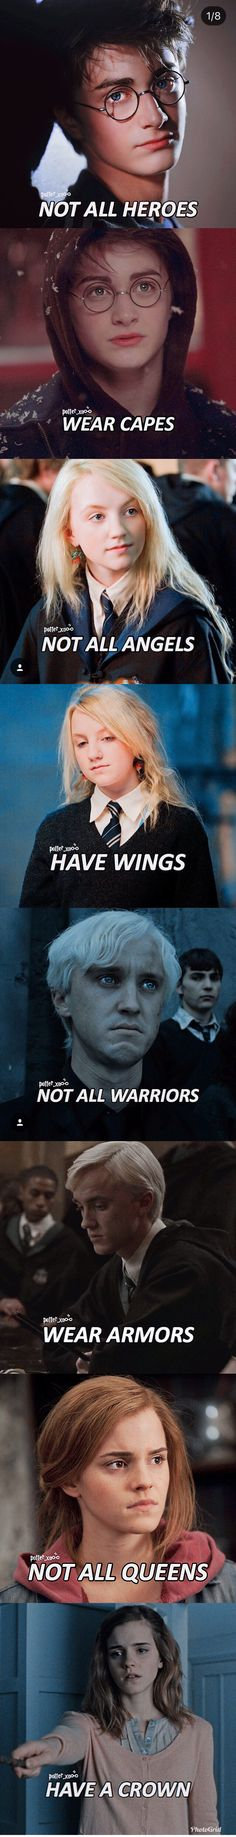 Yep, it's under Harry Potter funny! Bc Draco (as much as I love him) he ain'… Yep, it's under Harry Potter funny! Bc Draco (as much as I love him) he ain'…,Hogwarts/Harry Potter/…❤️⚡️ Yep,. Harry Potter Tumblr, Images Harry Potter, Estilo Harry Potter, Mundo Harry Potter, Harry Potter Spells, Harry Potter Jokes, Harry Potter Universal, Harry Potter Fandom, Harry Potter Characters